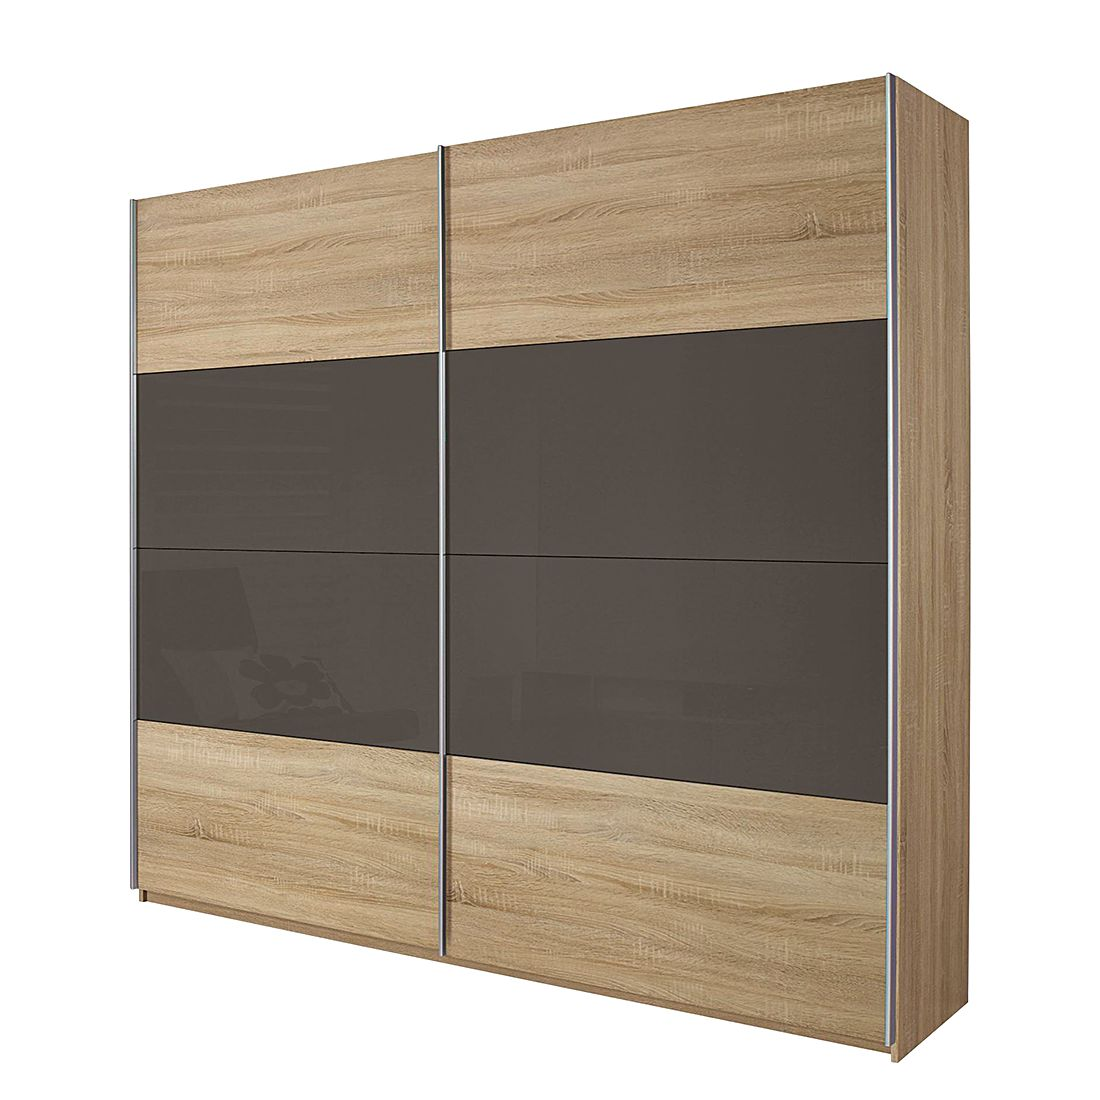 schwebet renschrank quadra eiche sonoma glas lava schrankbreite 315 cm 2 t rig schrank. Black Bedroom Furniture Sets. Home Design Ideas